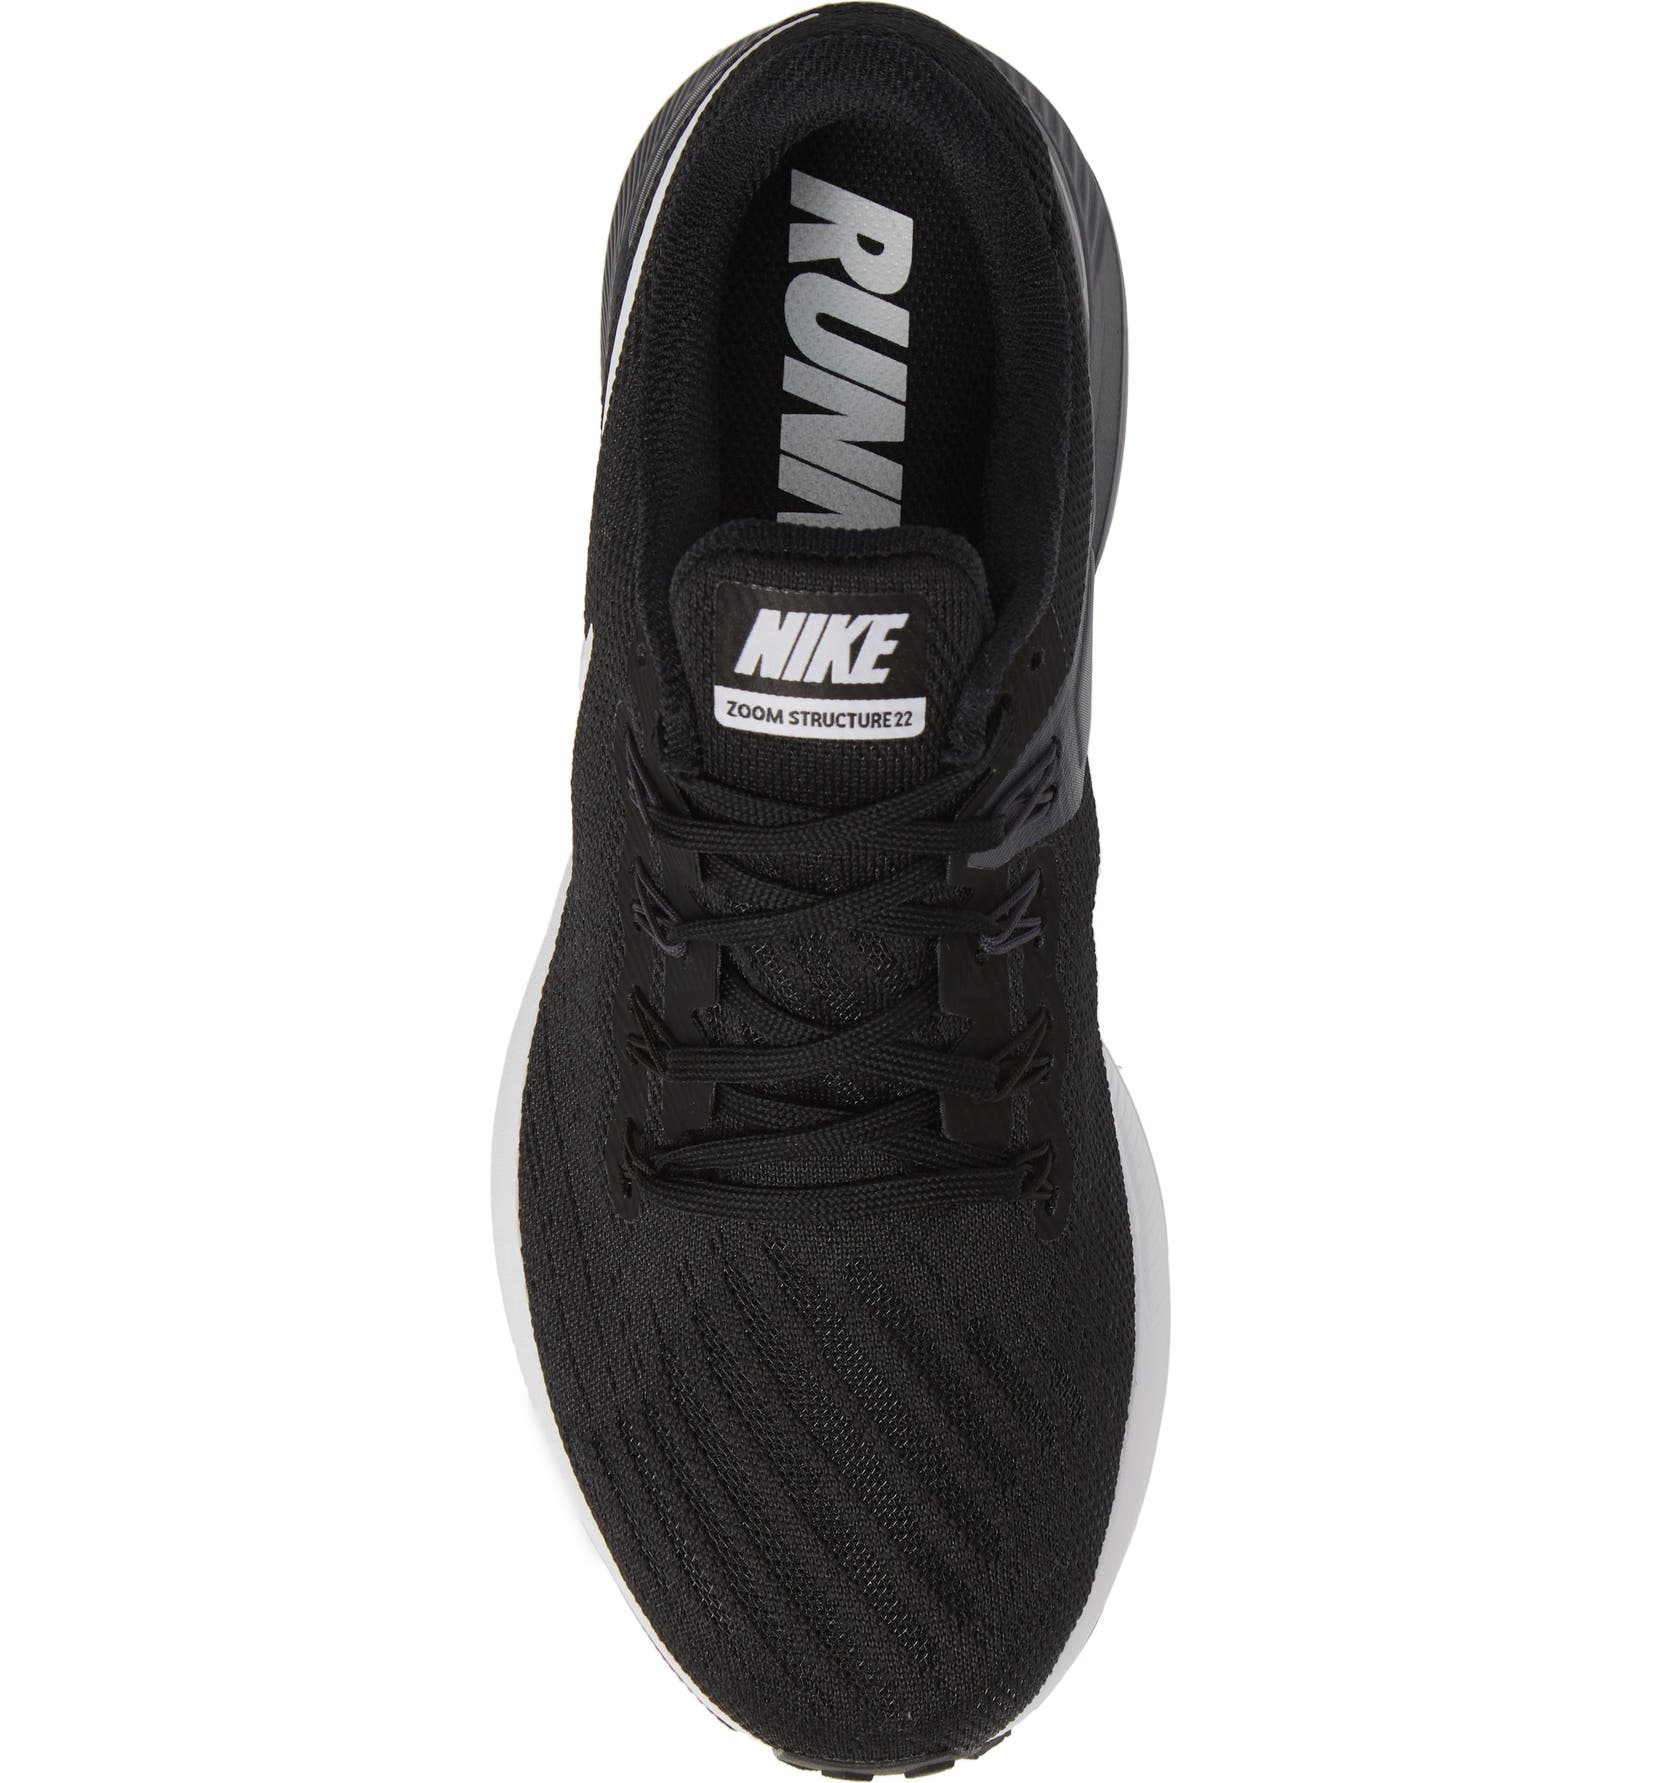 promo code c4122 93043 Air Zoom Structure 22 Running Shoe